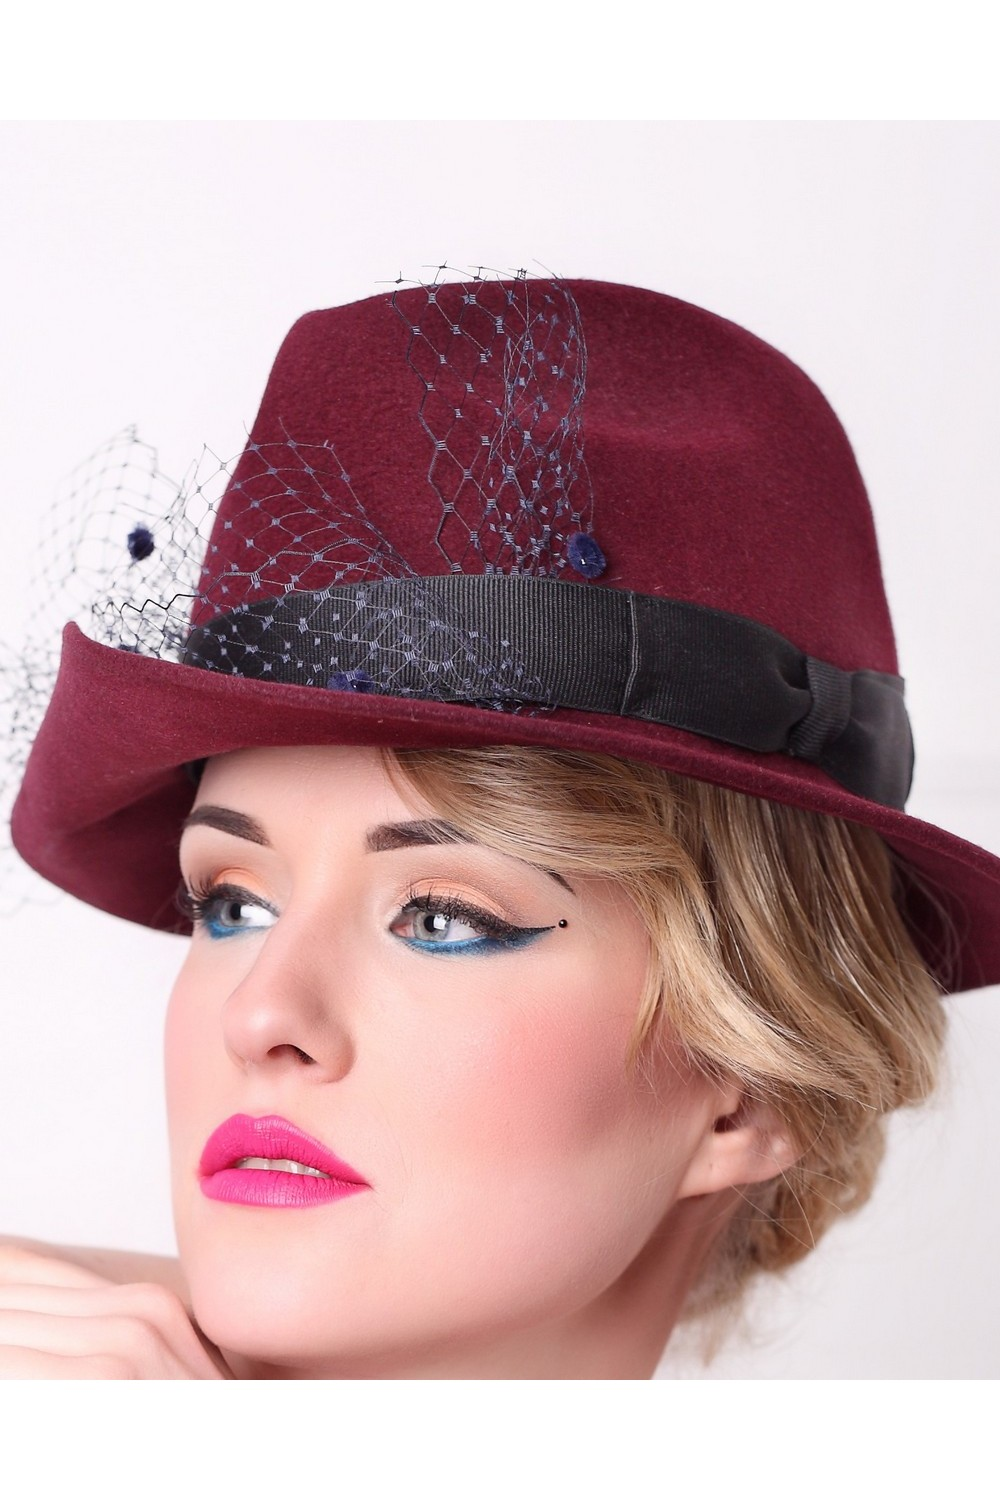 Buy Burgundy felt women's fedora hat in retro style, Exclusive unique stylish hat for holiday and casual